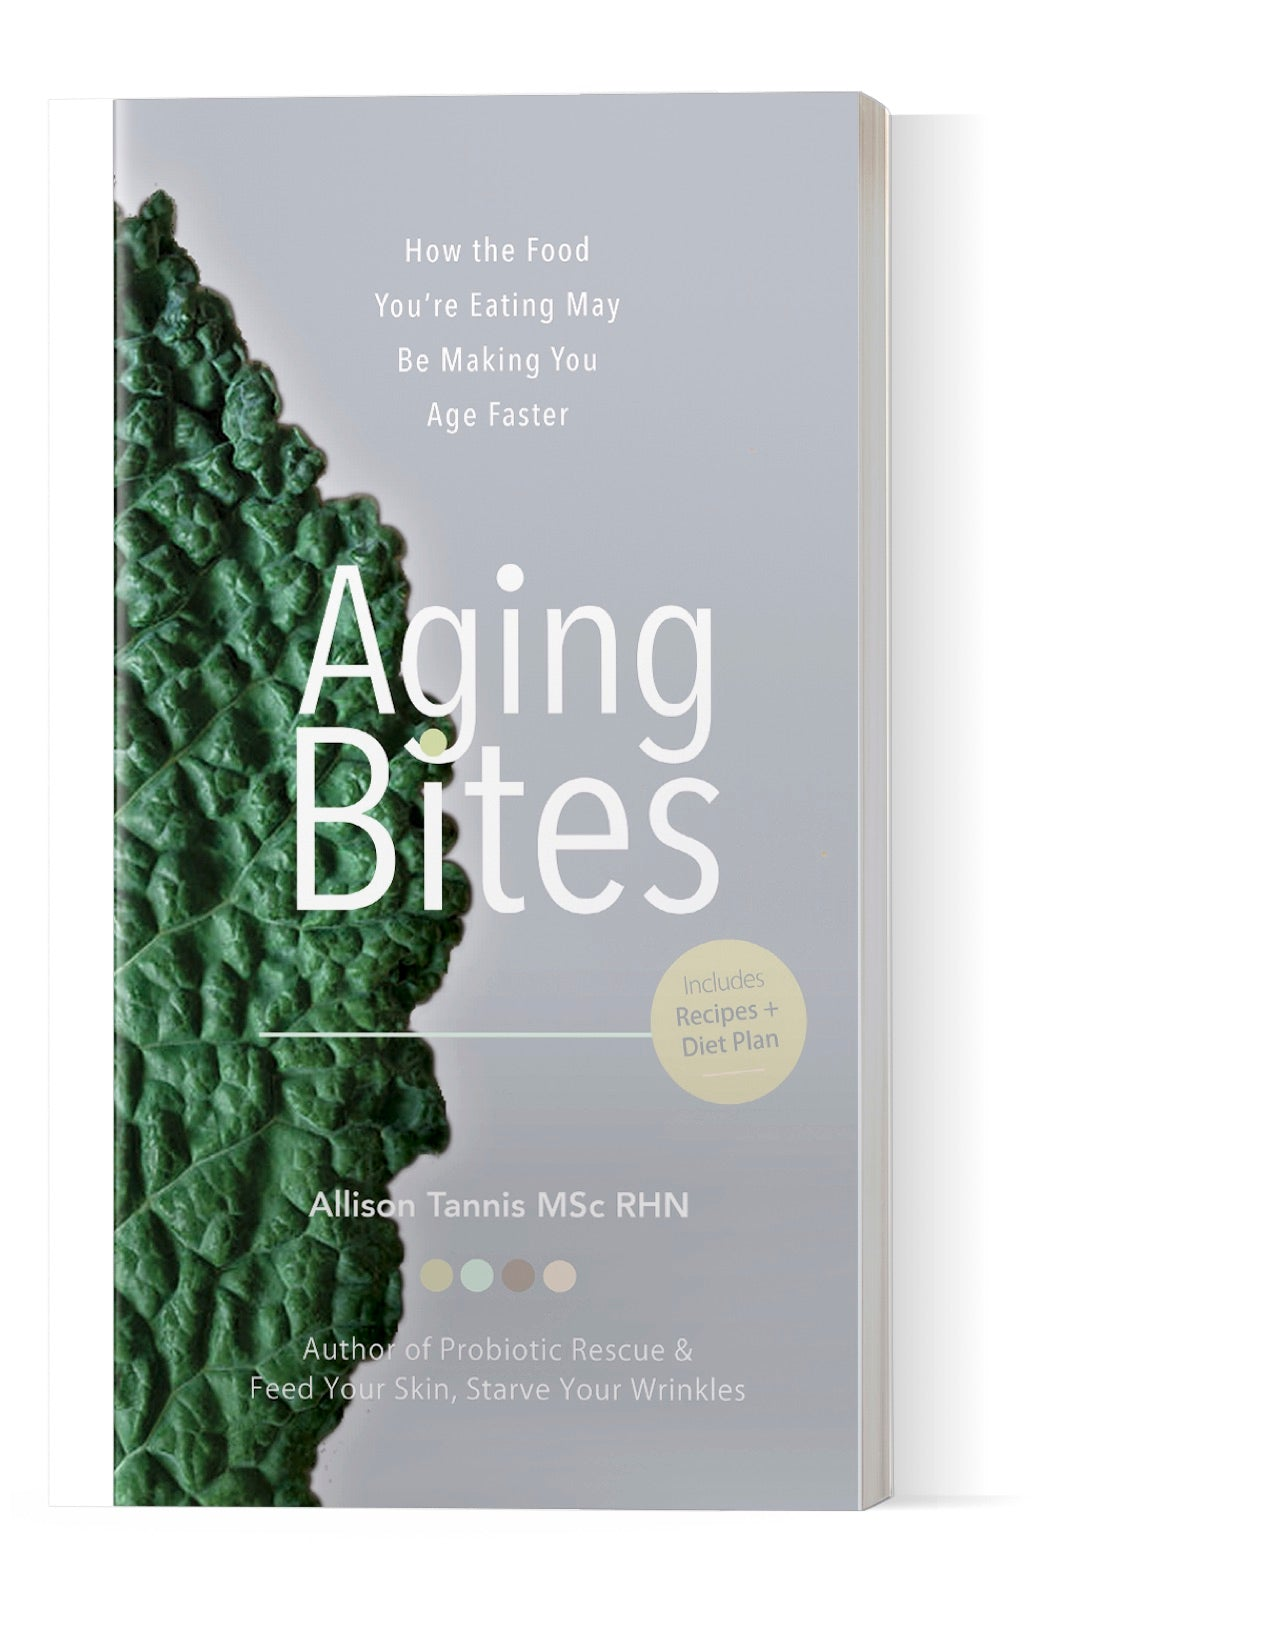 Soft Cover Book - Aging Bites